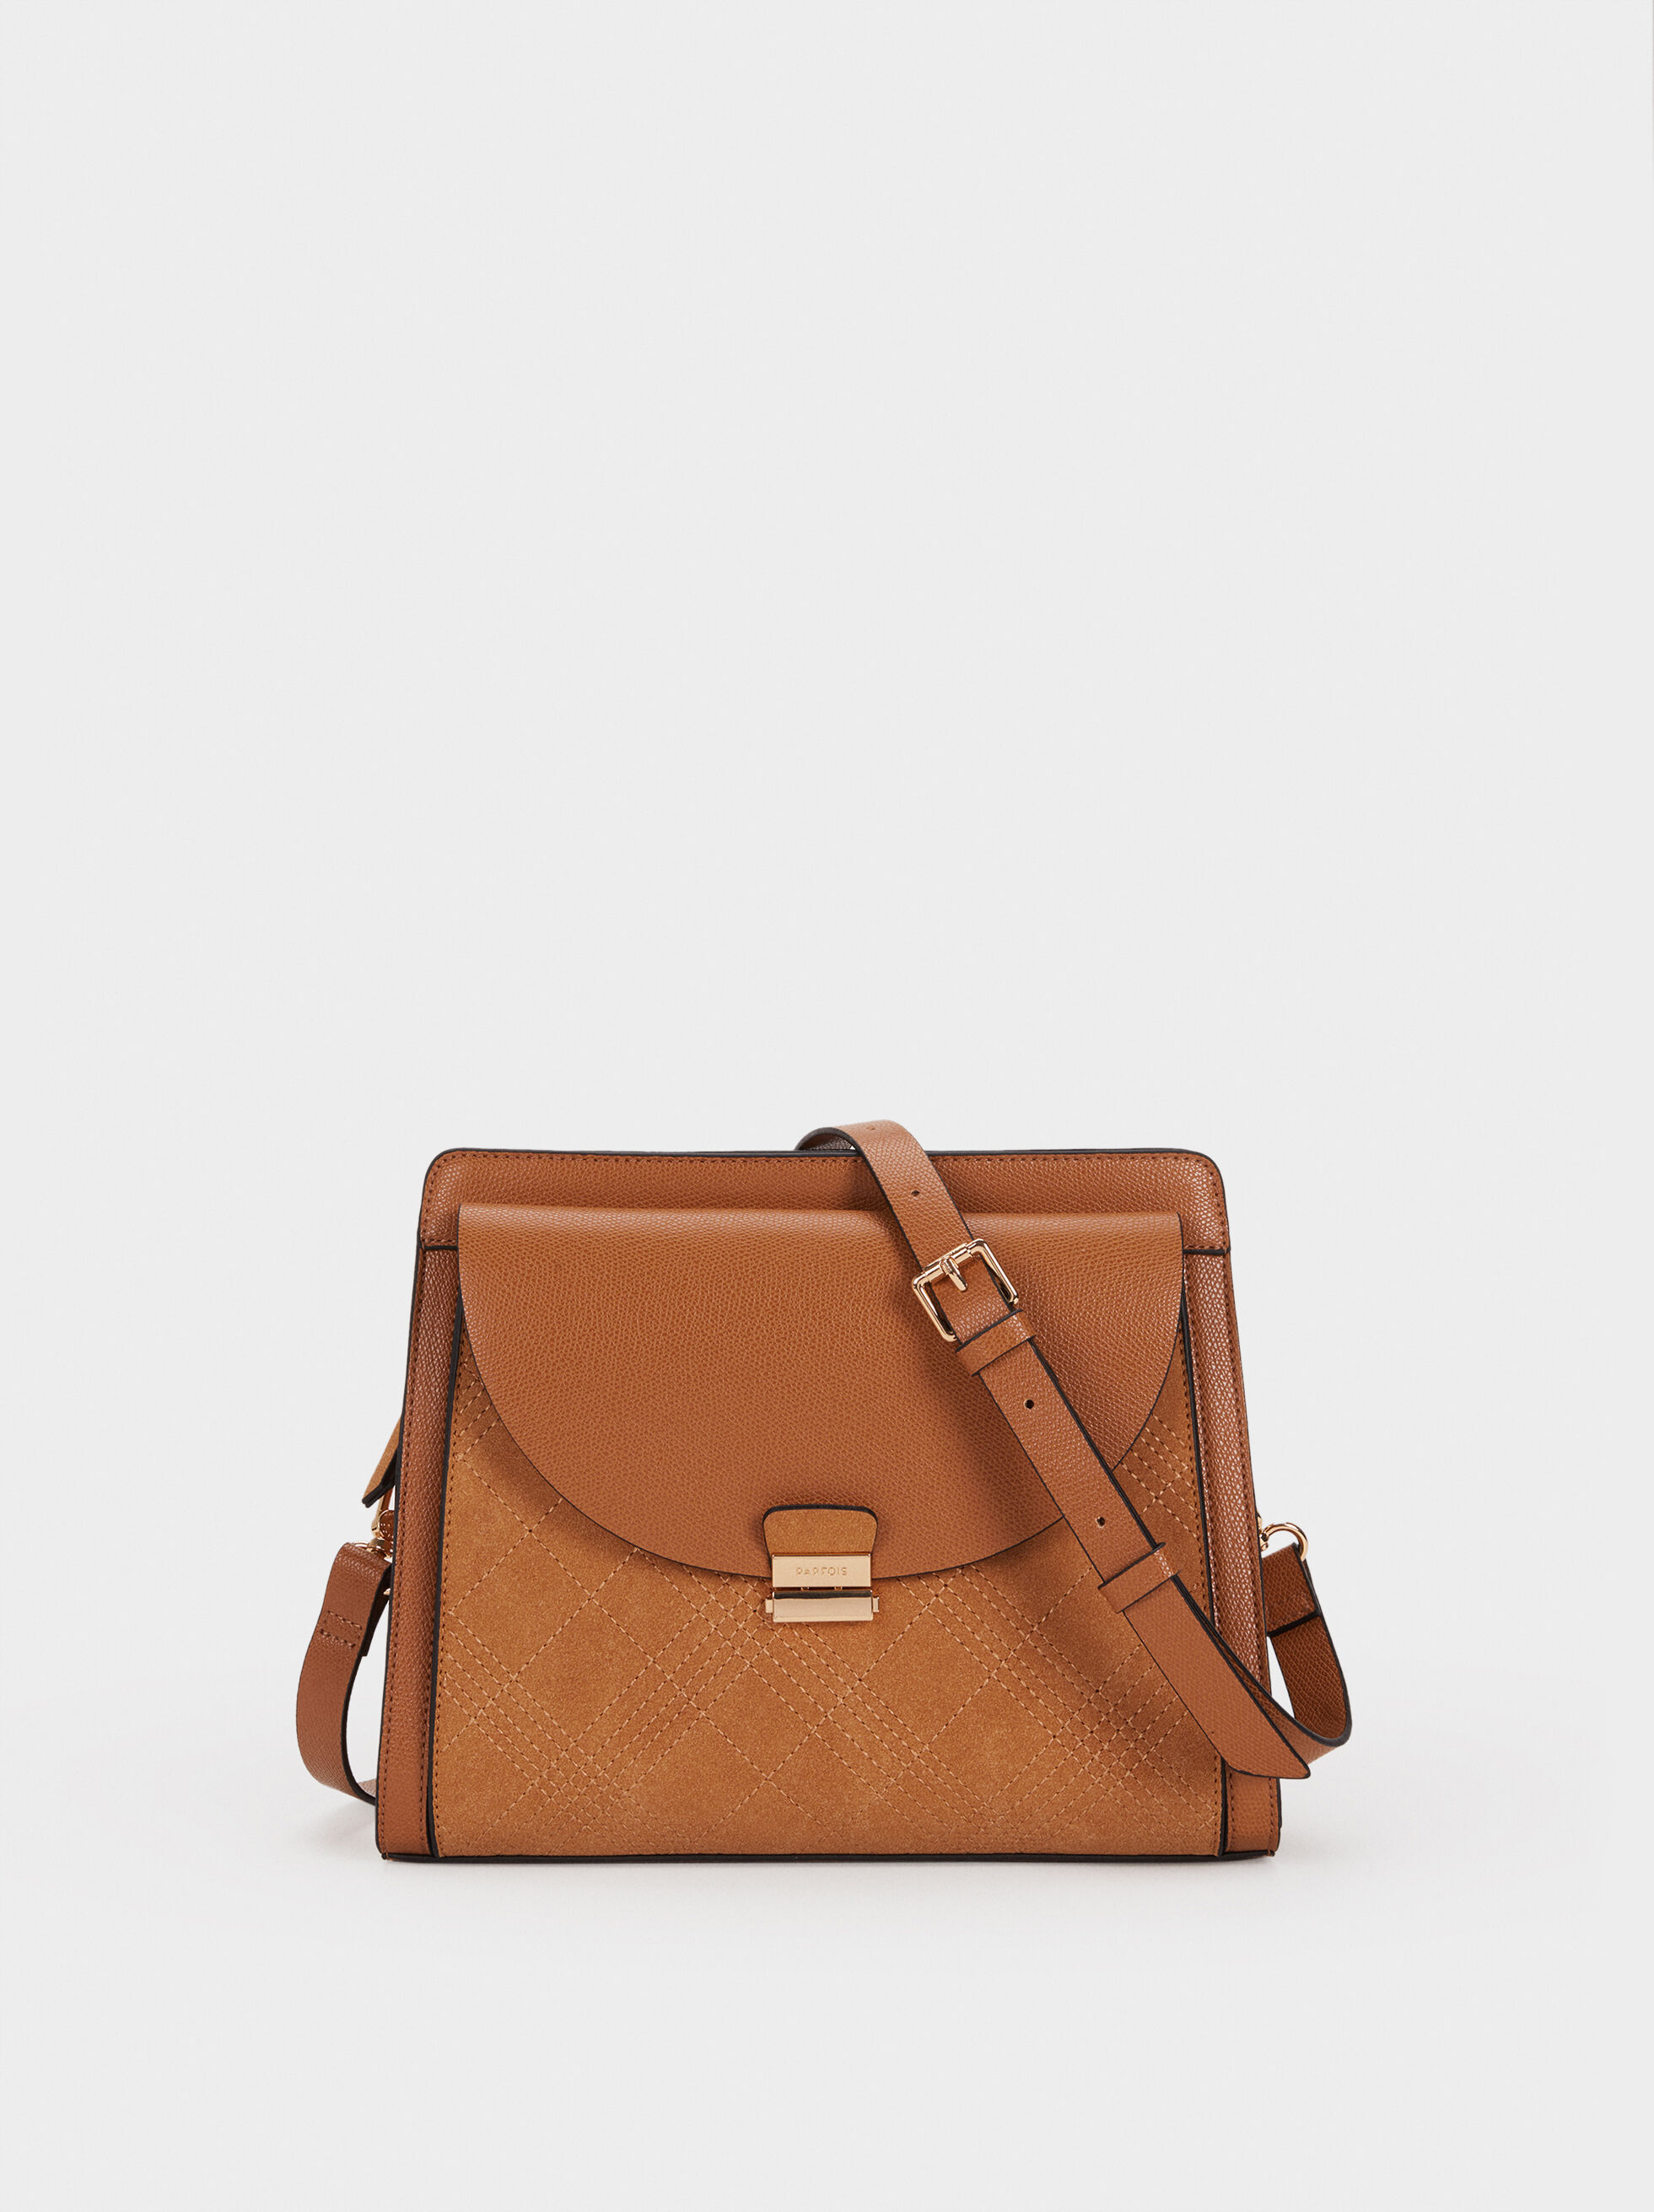 Shoulder Bag With Topstitching, , hi-res